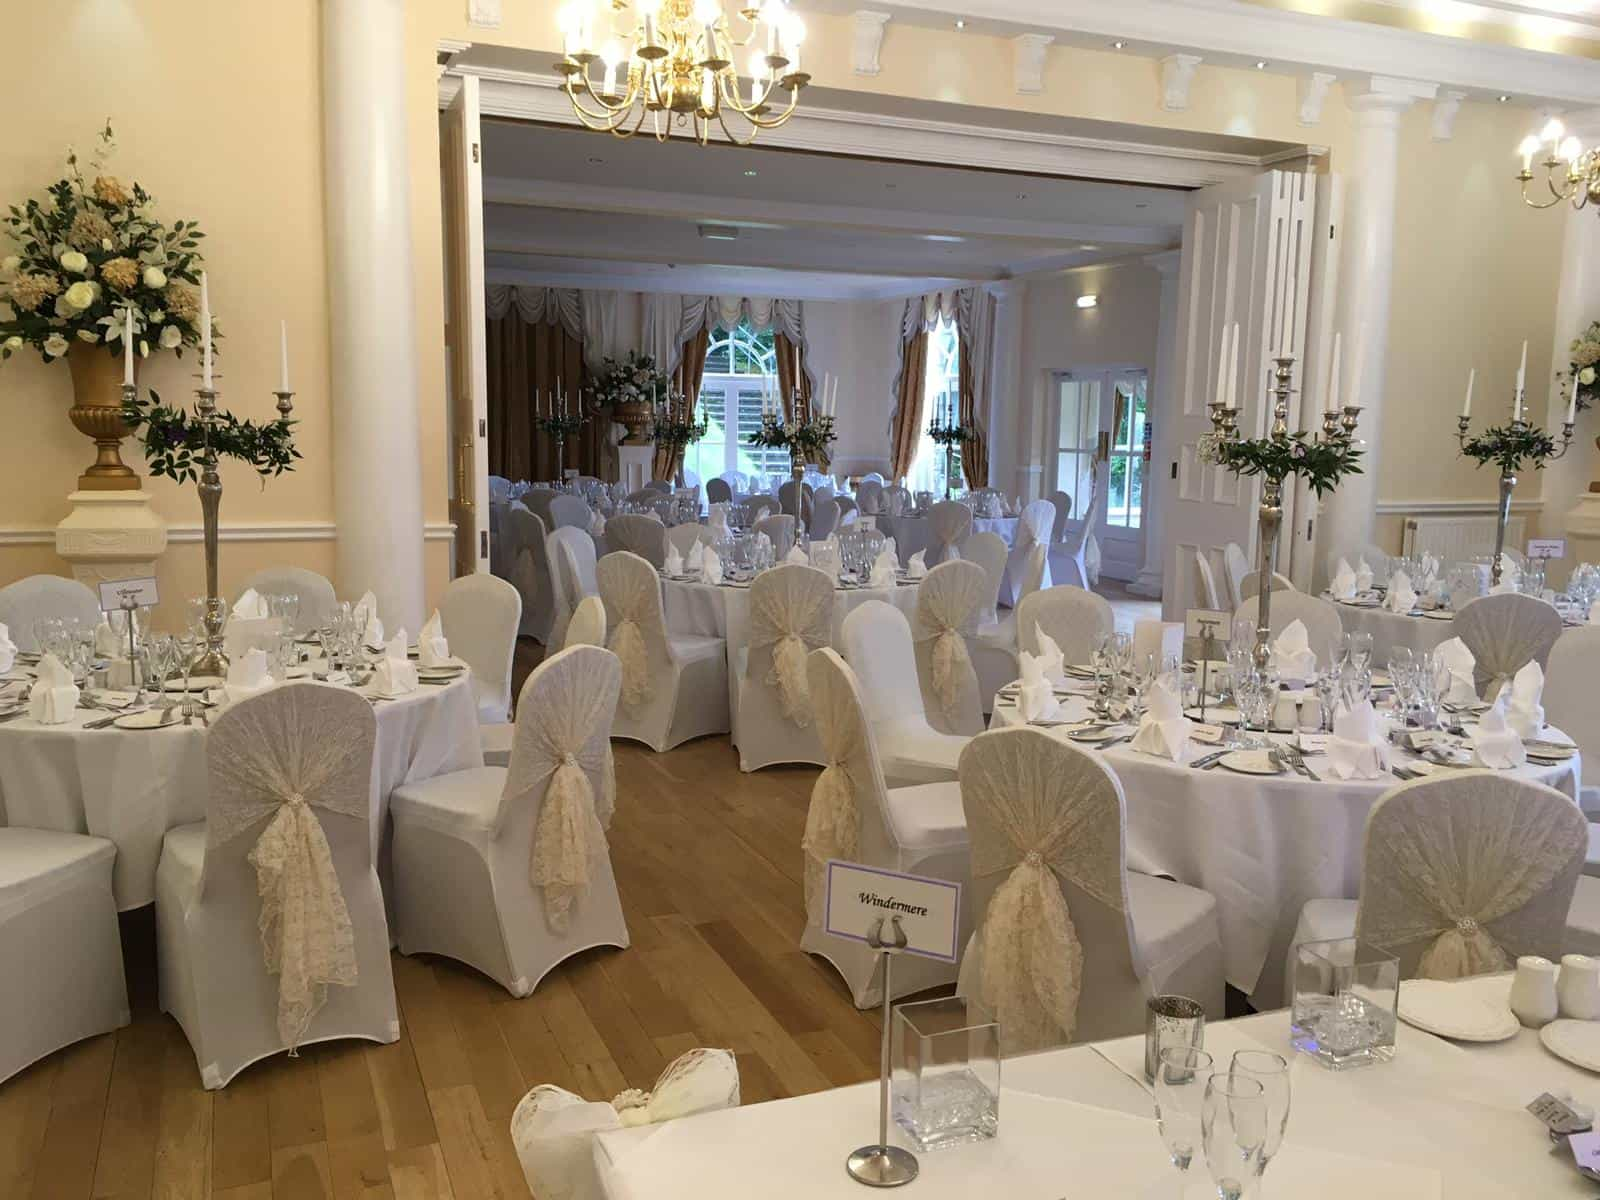 Wedding breakfast venue dressing with white chair and table linen and white lace hoods over chairs